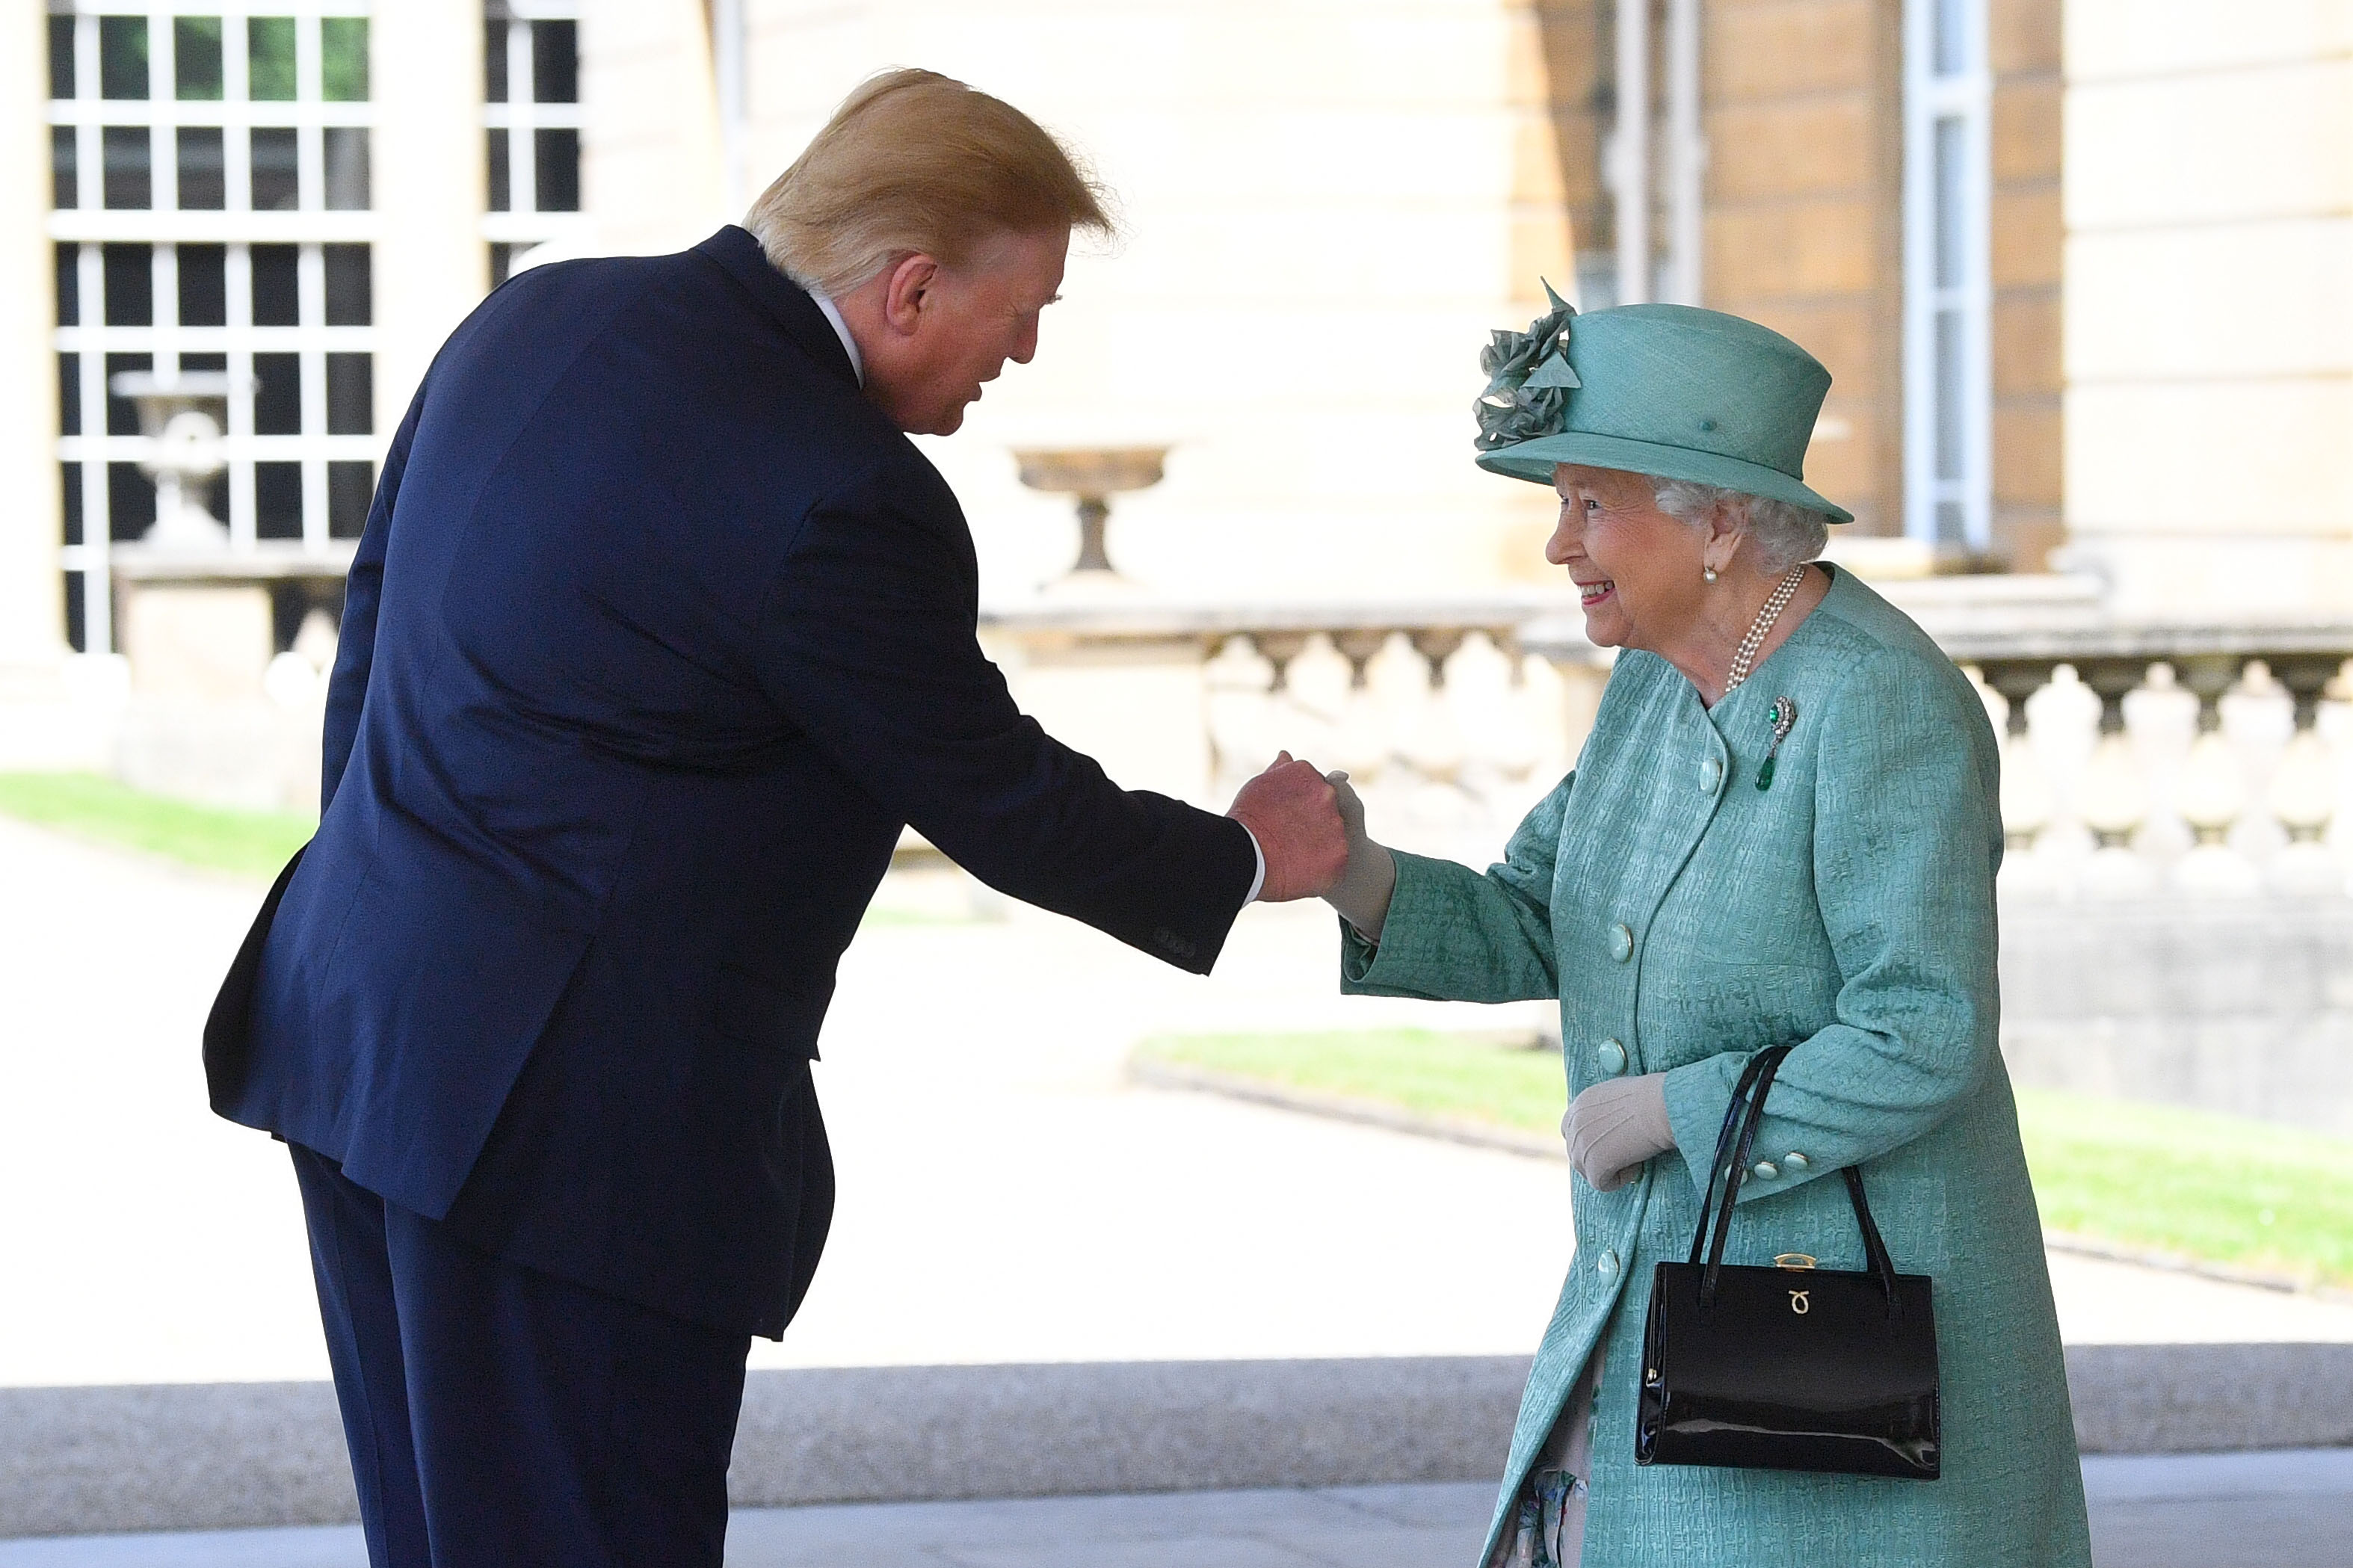 U.S. President Donald Trump is greeted by Queen Elizabeth II at Buckingham Palace on June 3, 2019 in London, England. President Trump's three-day state visit will include lunch with the Queen, and a State Banquet at Buckingham Palace, as well as business meetings with the Prime Minister and the Duke of York, before travelling to Portsmouth to mark the 75th anniversary of the D-Day landings. (Photo by Victoria Jones - WPA Pool/Getty Images)